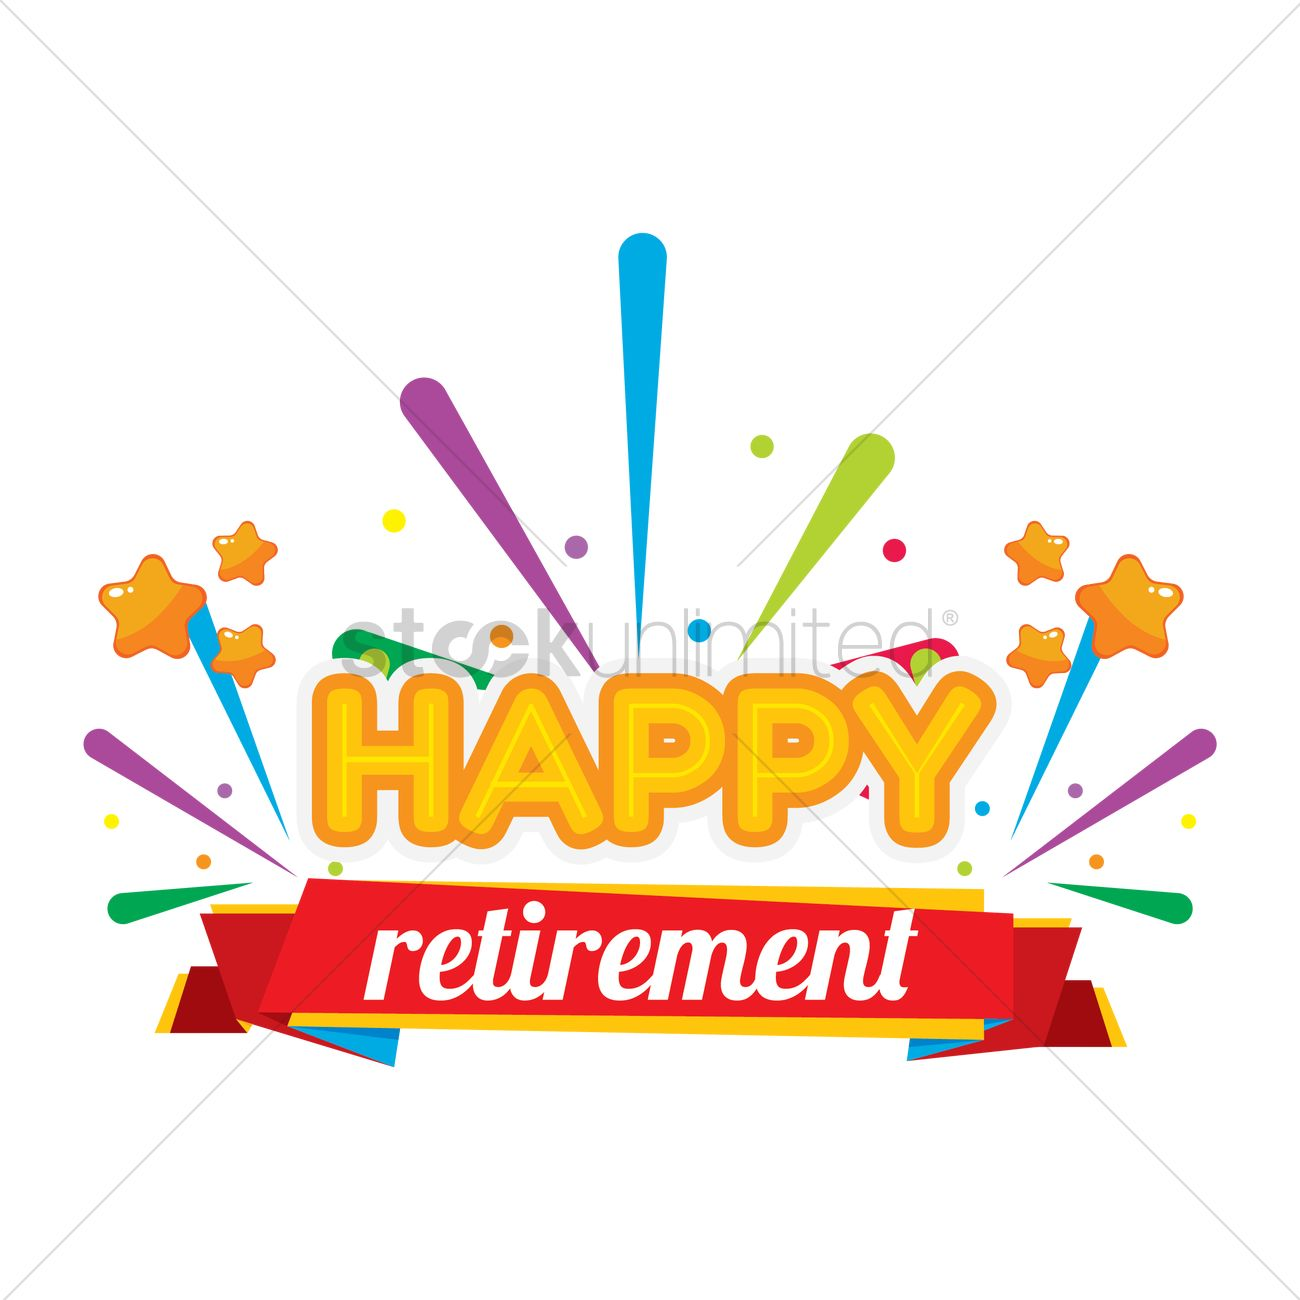 happy retirement label vector image 1707699 stockunlimited retirement clipart banner retirement clipart female